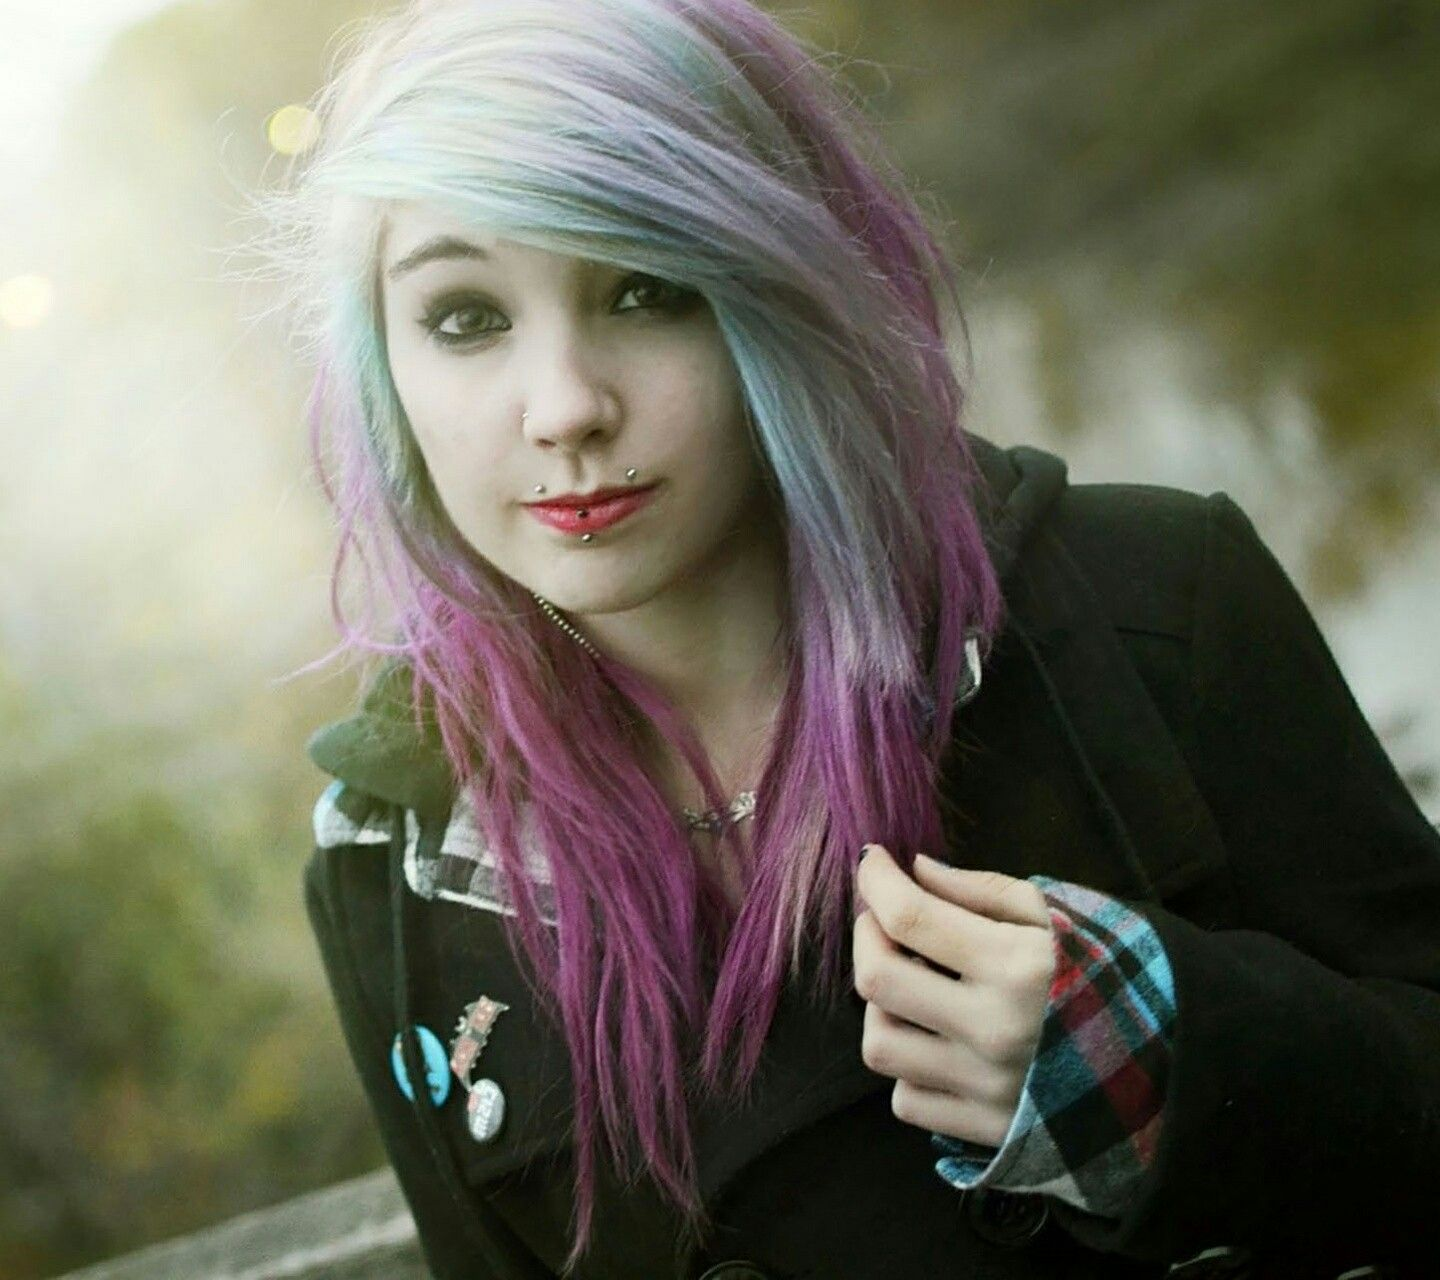 1440x1280 Pin by Angel valentines on wallpapers in 2018   Pinterest   Emo girl ...